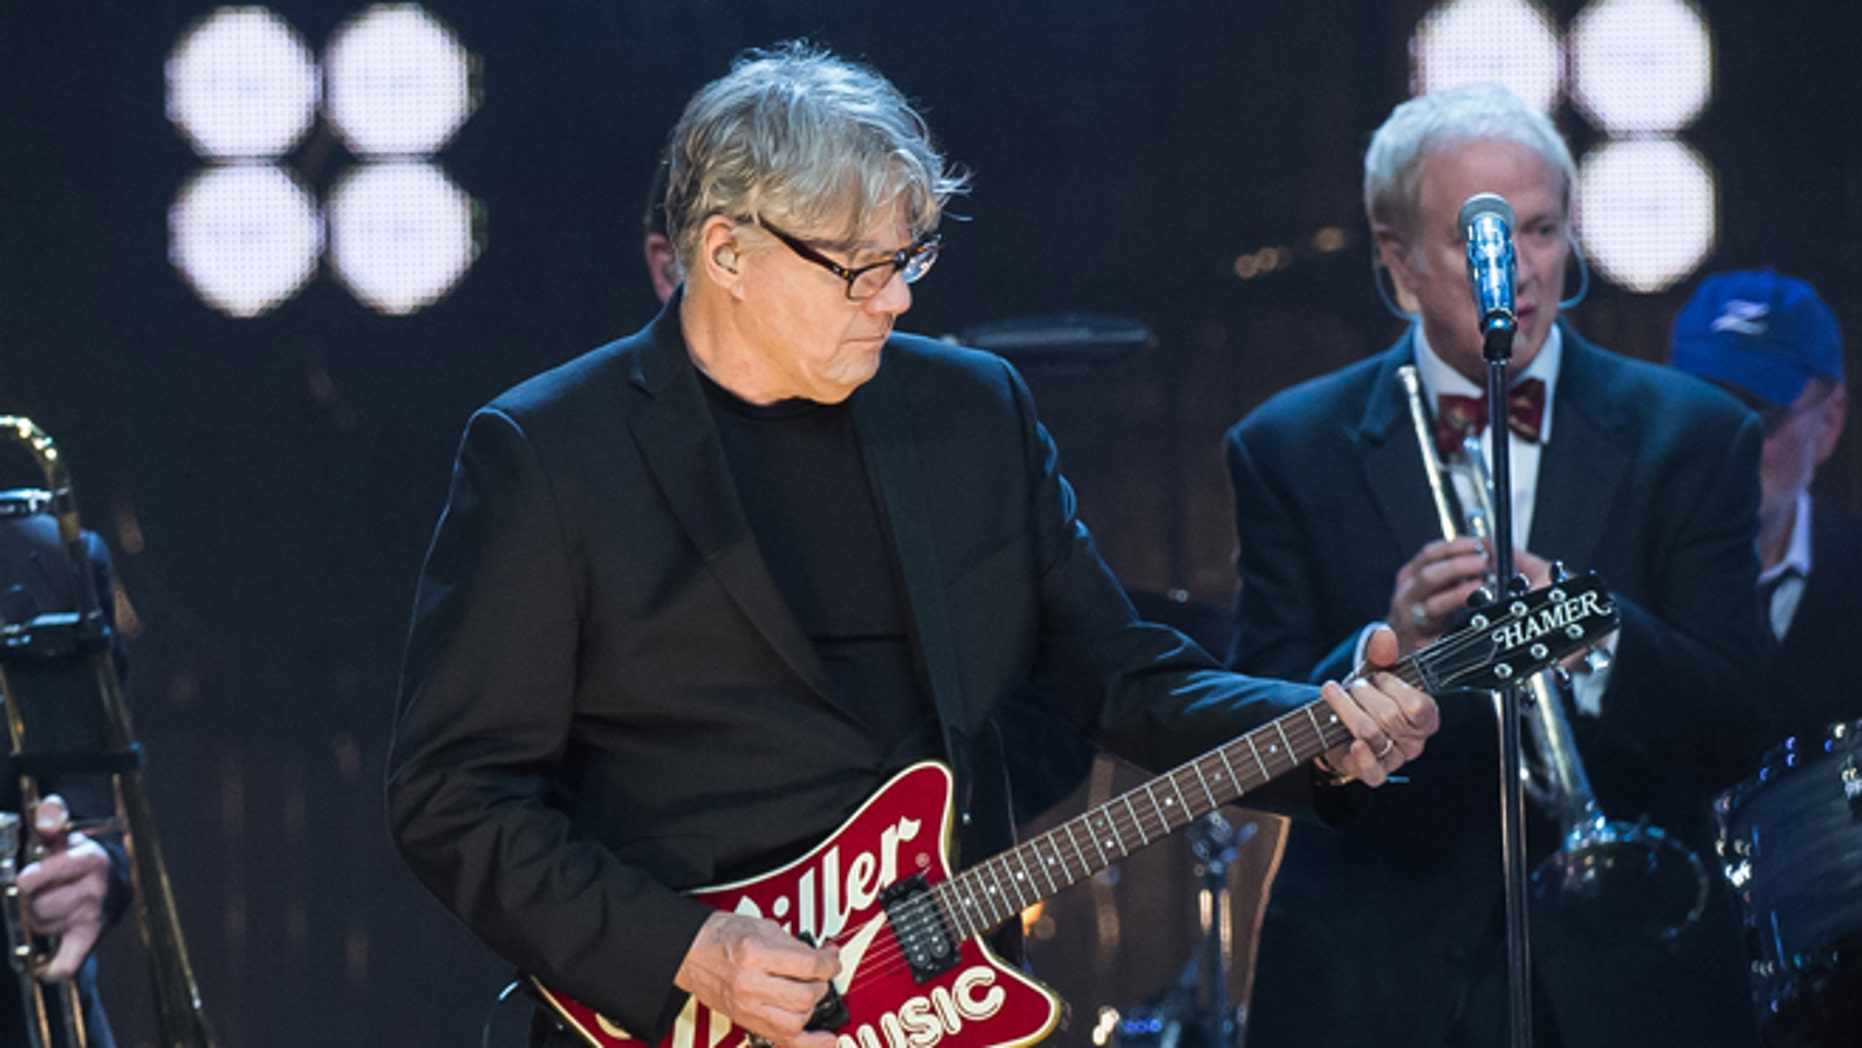 April 8, 2016. Inductee Steve Miller performs at the 31st Annual Rock and Roll Hall of Fame Induction Ceremony at the Barclays Center in New York.